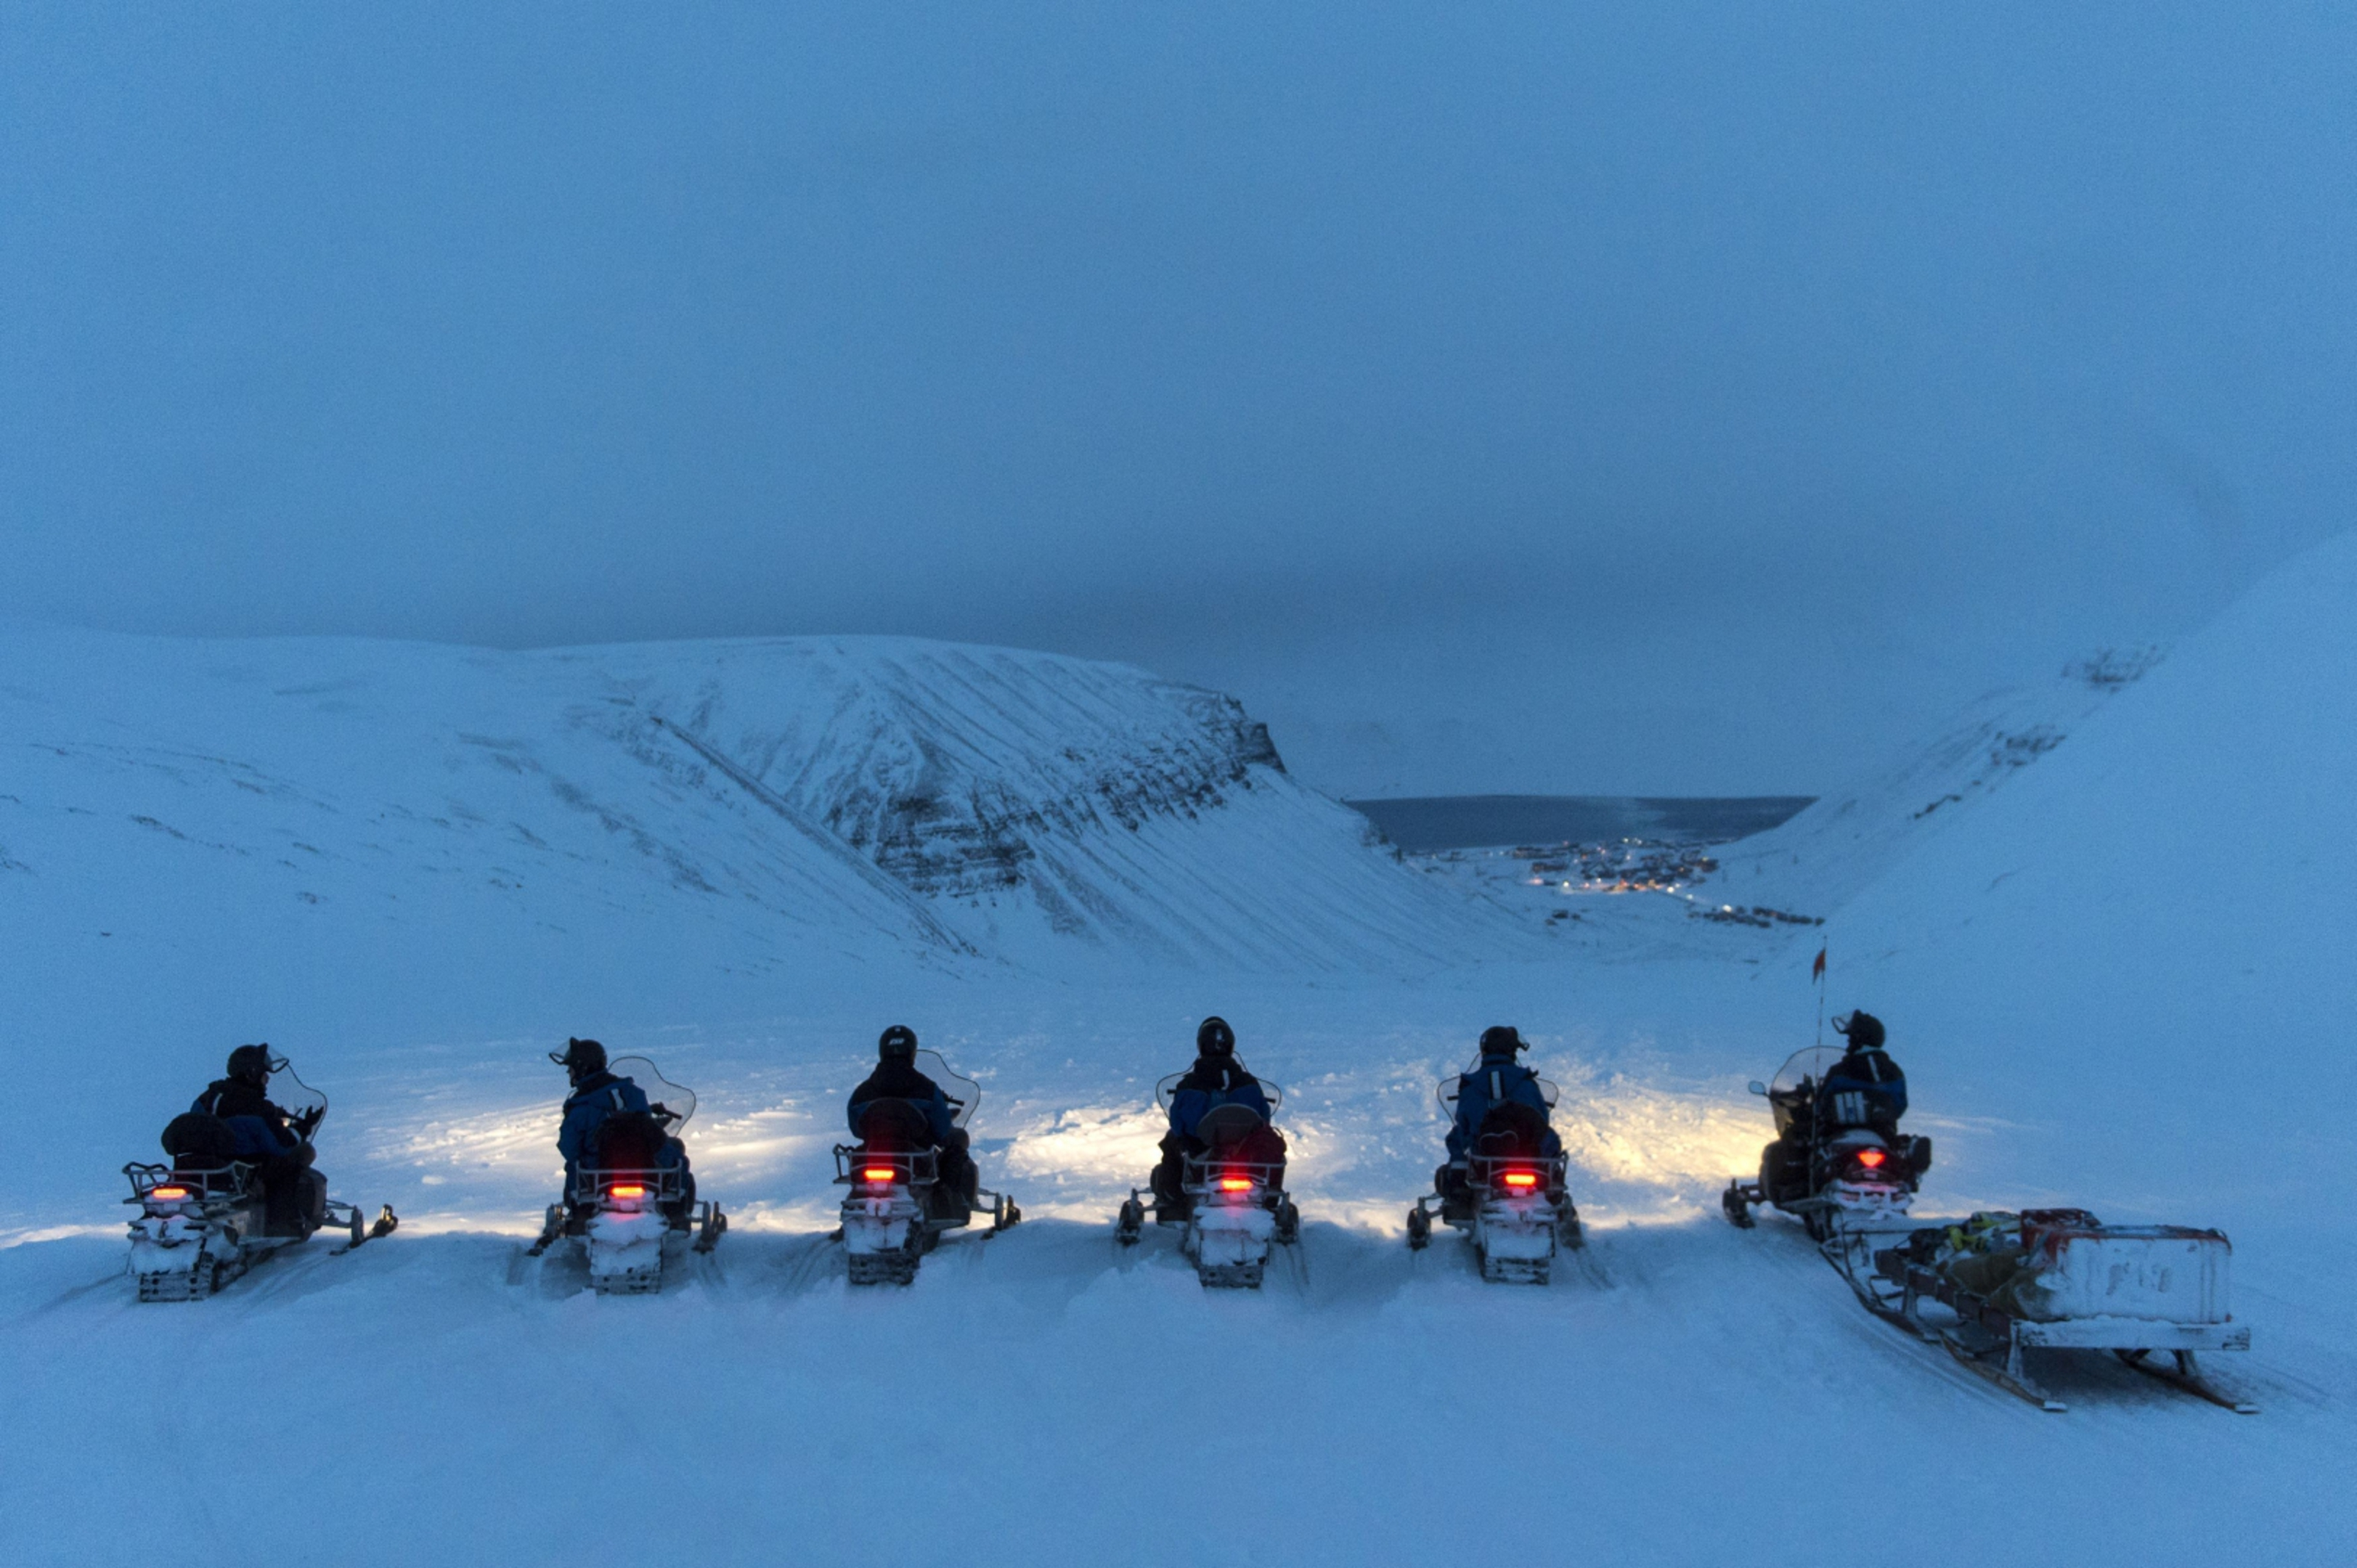 The snowmobile safari across the artic desert.